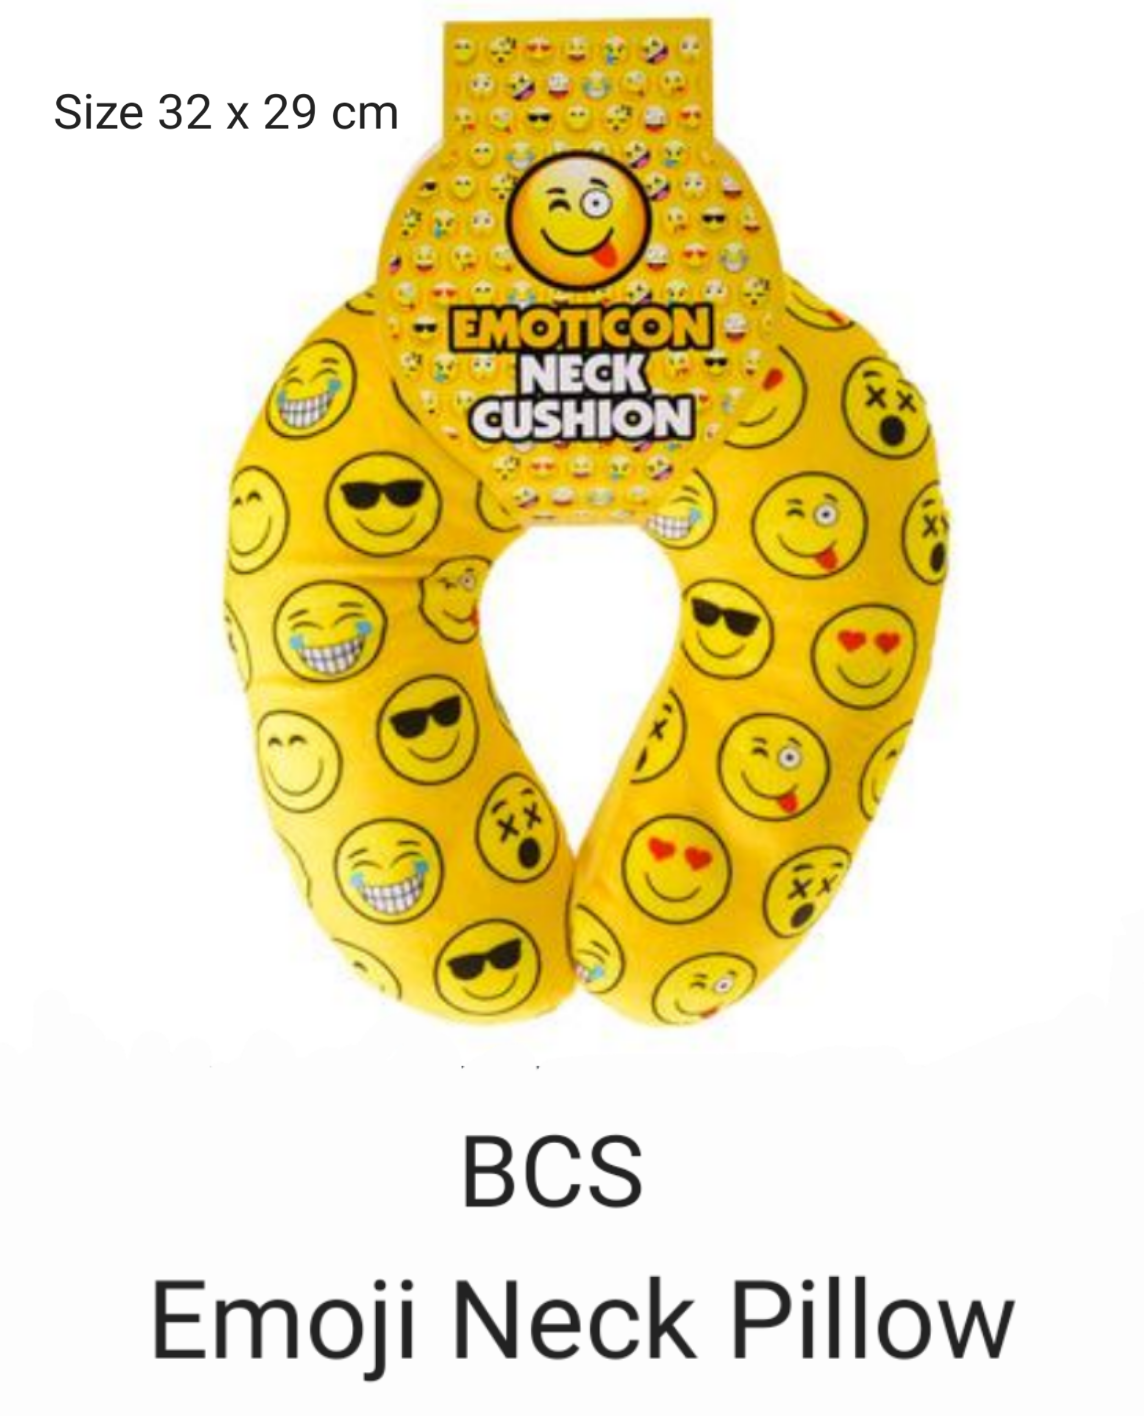 BCS Emoji Neck Pillow